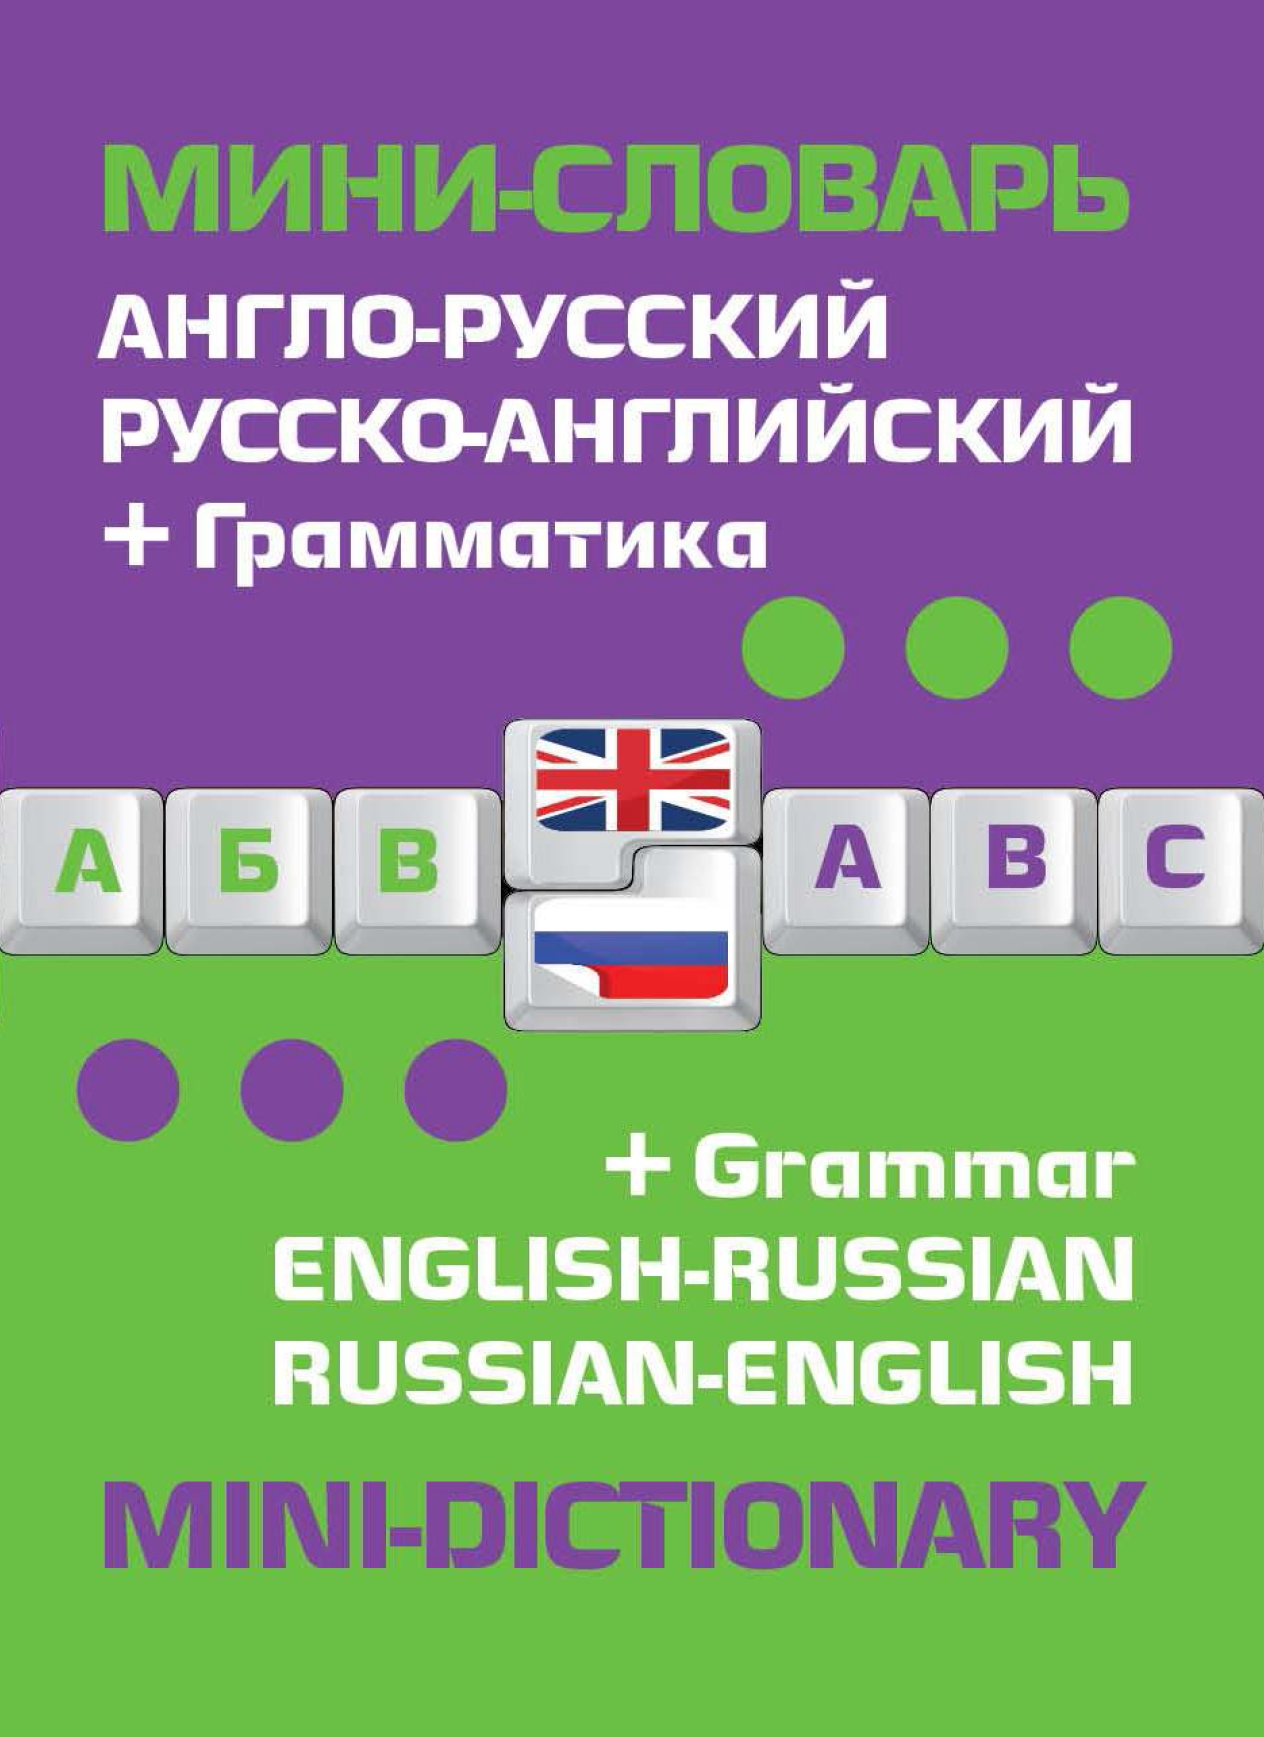 Отсутствует Англо-русский русско-английский мини-словарь. Грамматика / English-Russian Russian-English. Mini-Dictionary. Grammar кияткина и английский язык основы грамматики english the basics of grammar